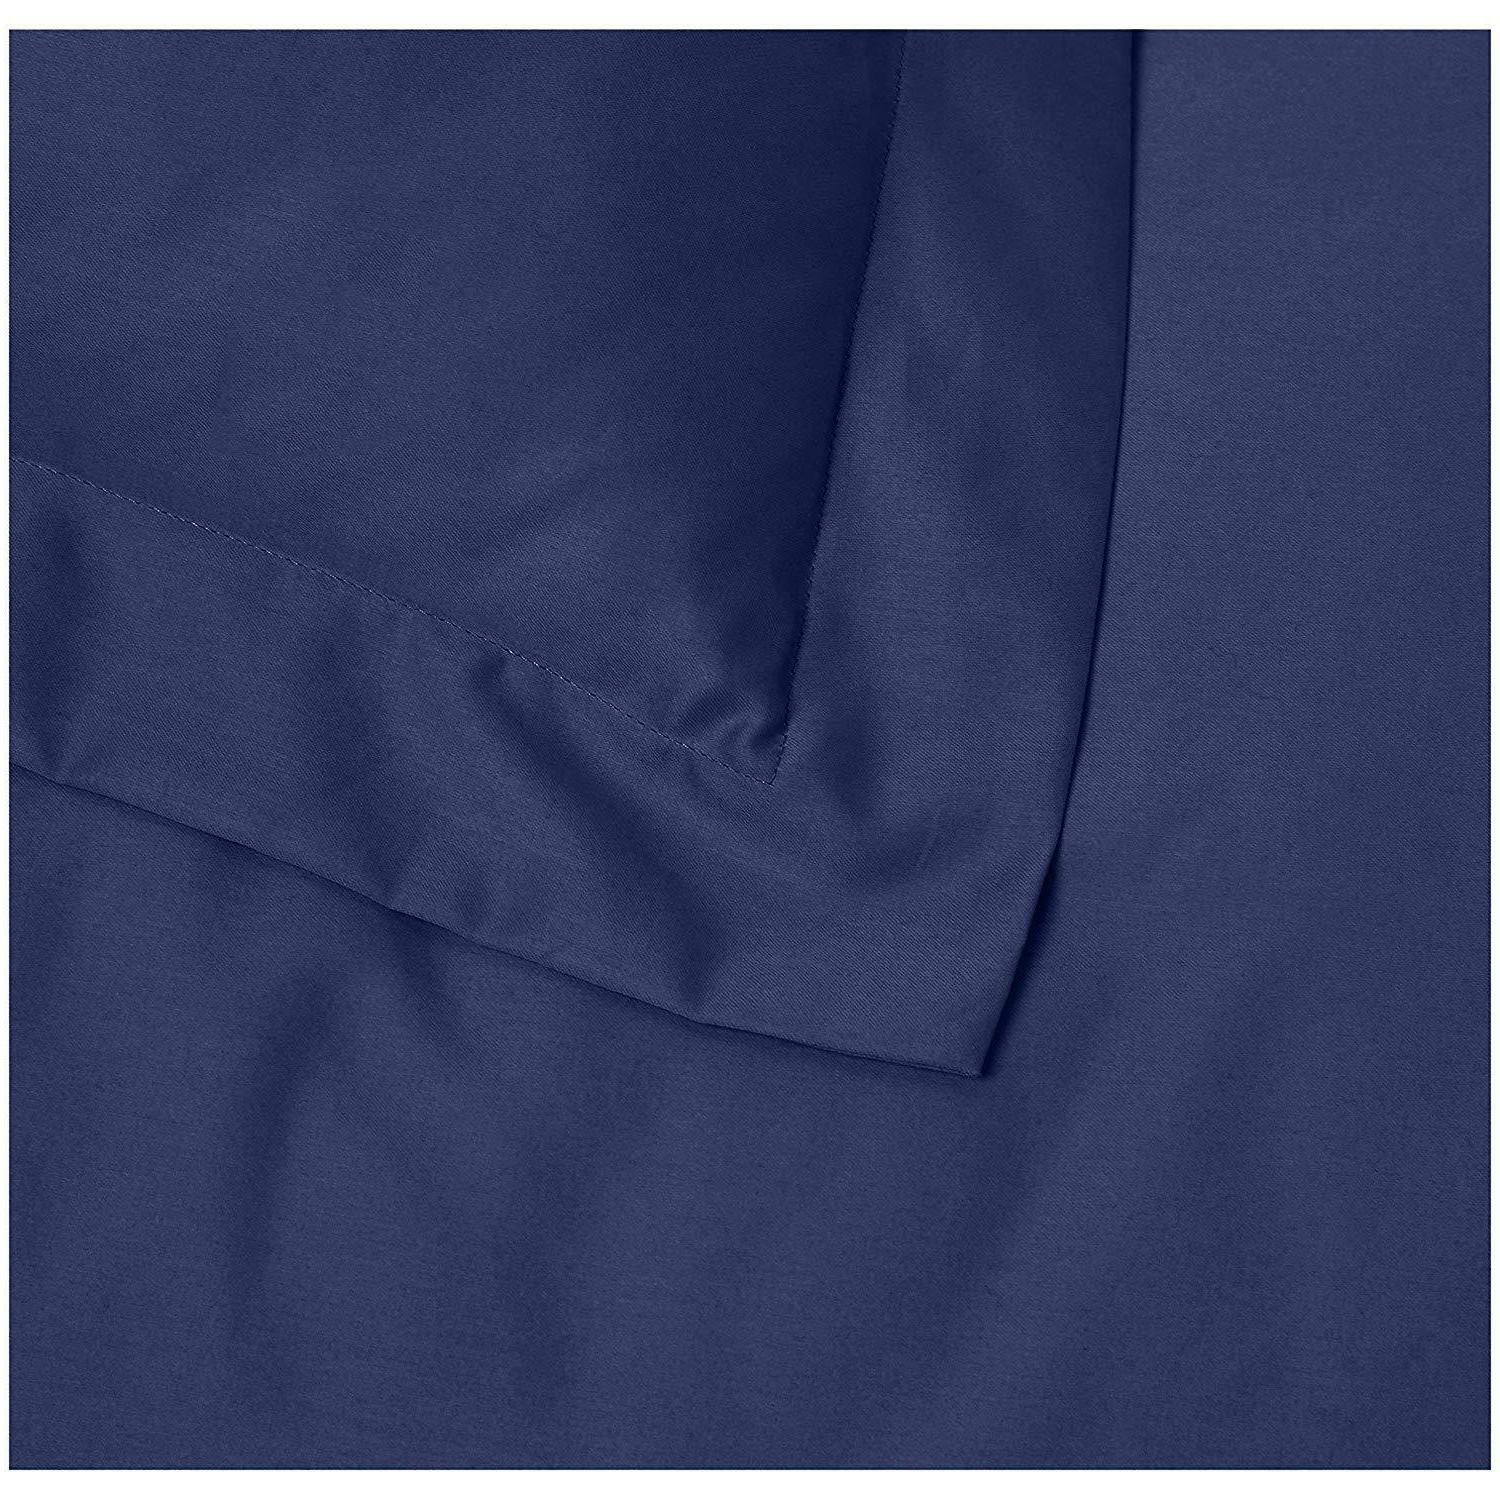 AmazonBasics 400 Cotton with Sateen